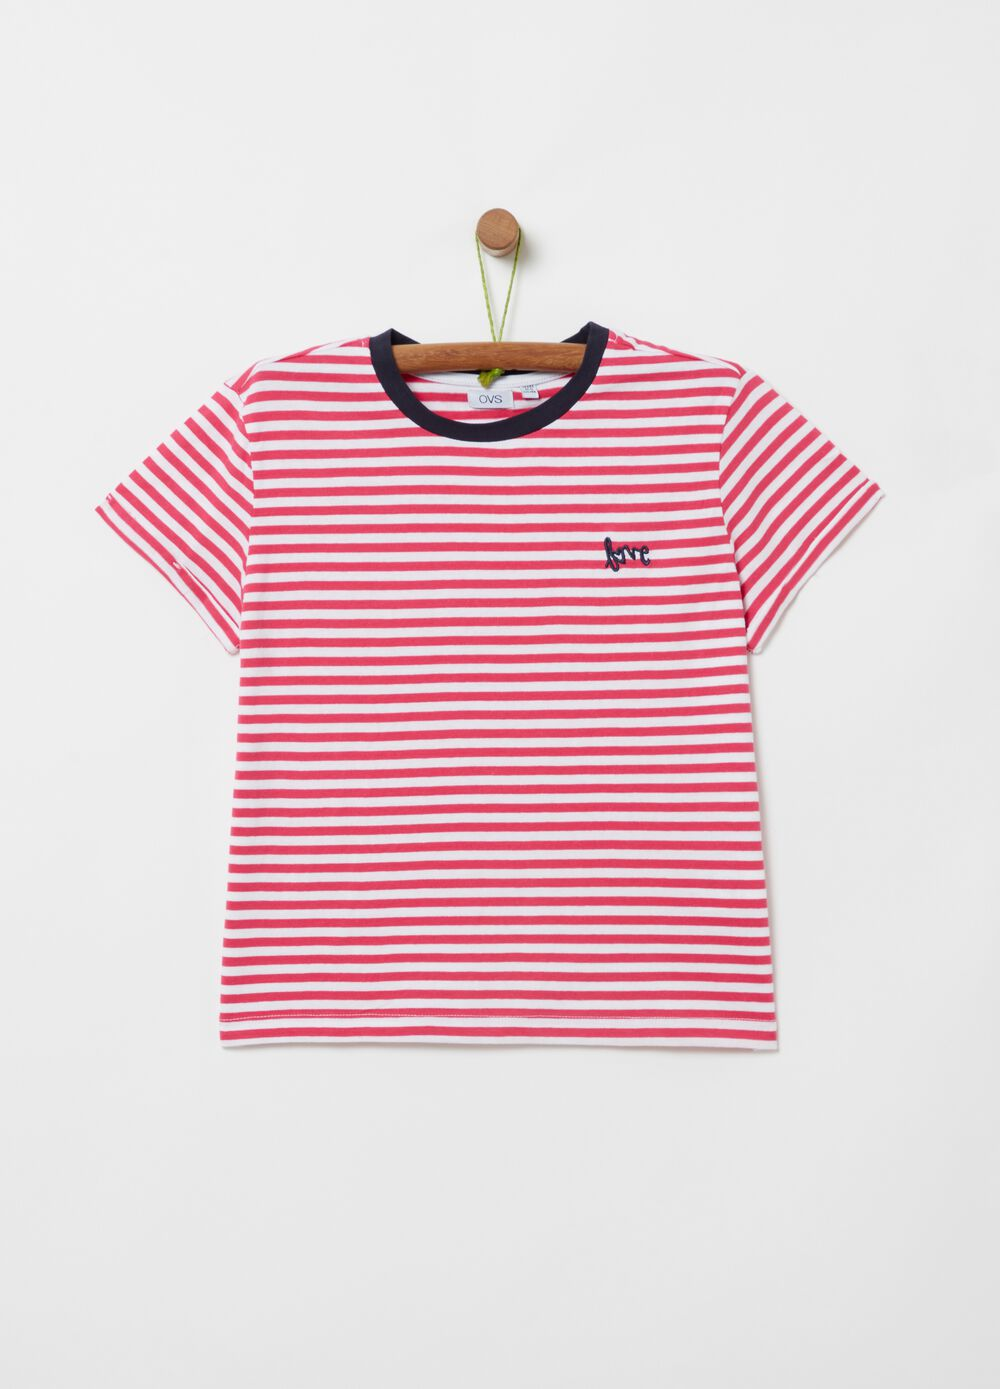 Striped T-shirt with lettering embroidery